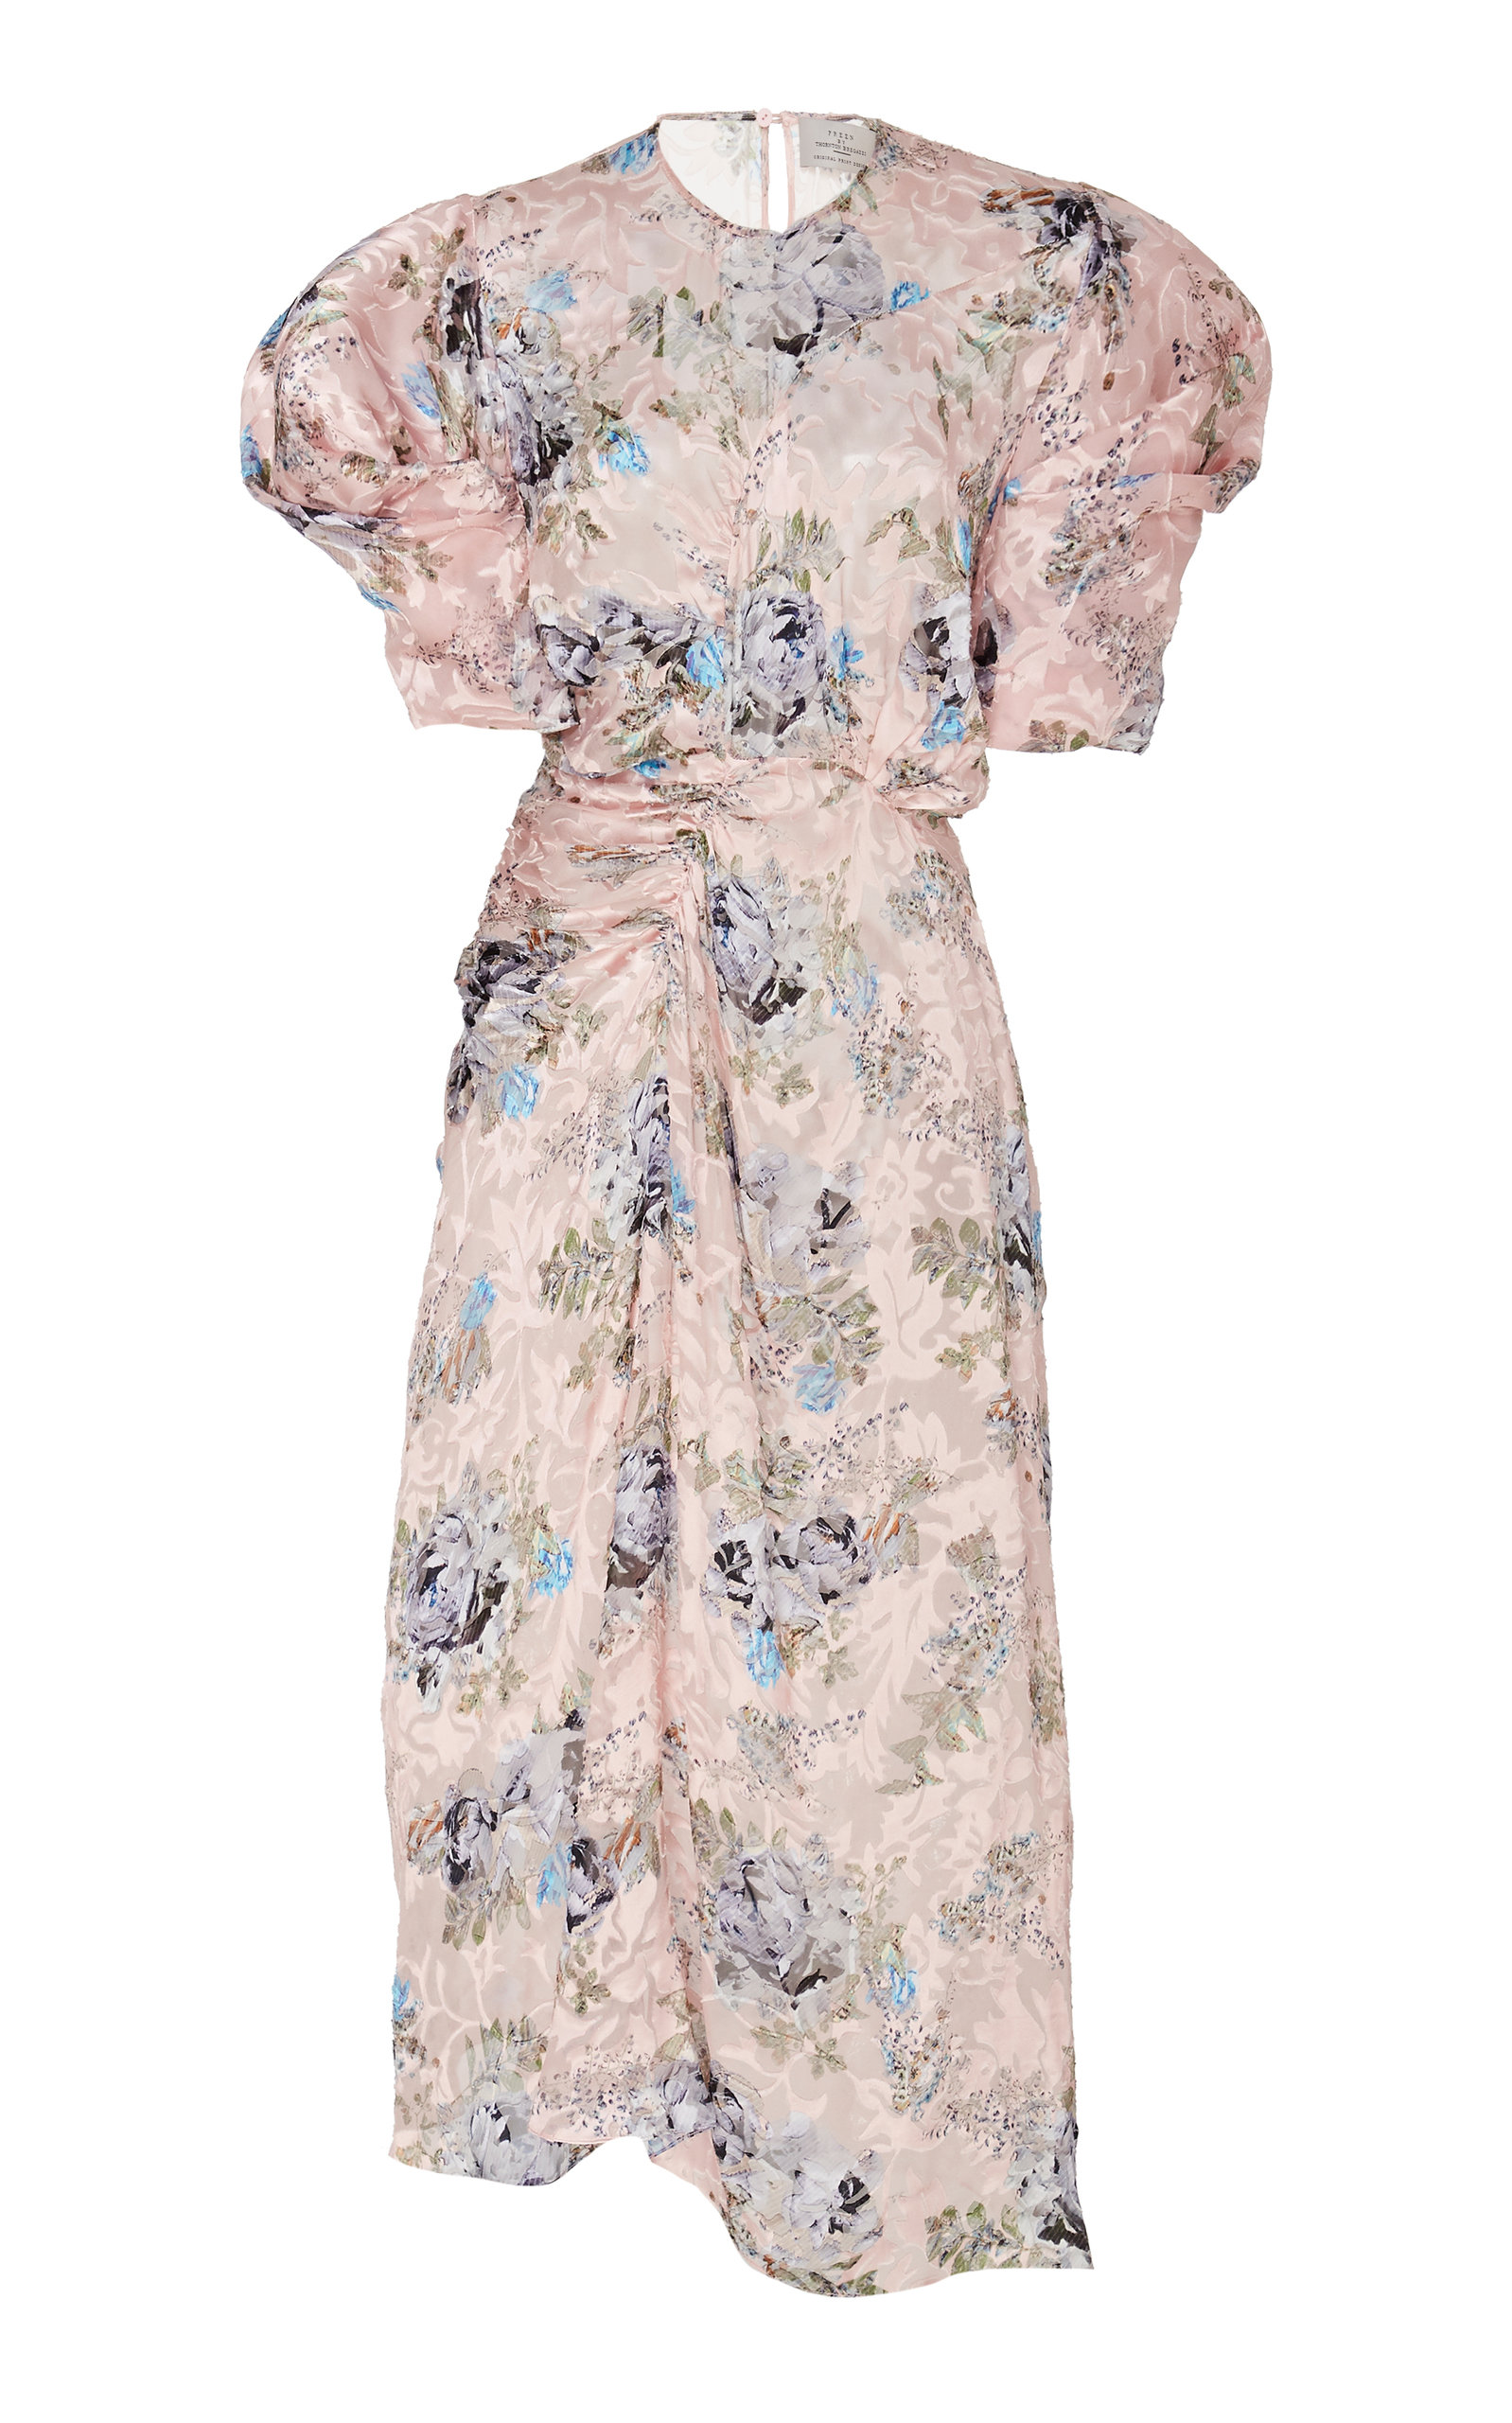 Buy Preen by Thornton Bregazzi Pippa Floral Jacquard Dress online, shop Preen by Thornton Bregazzi at the best price